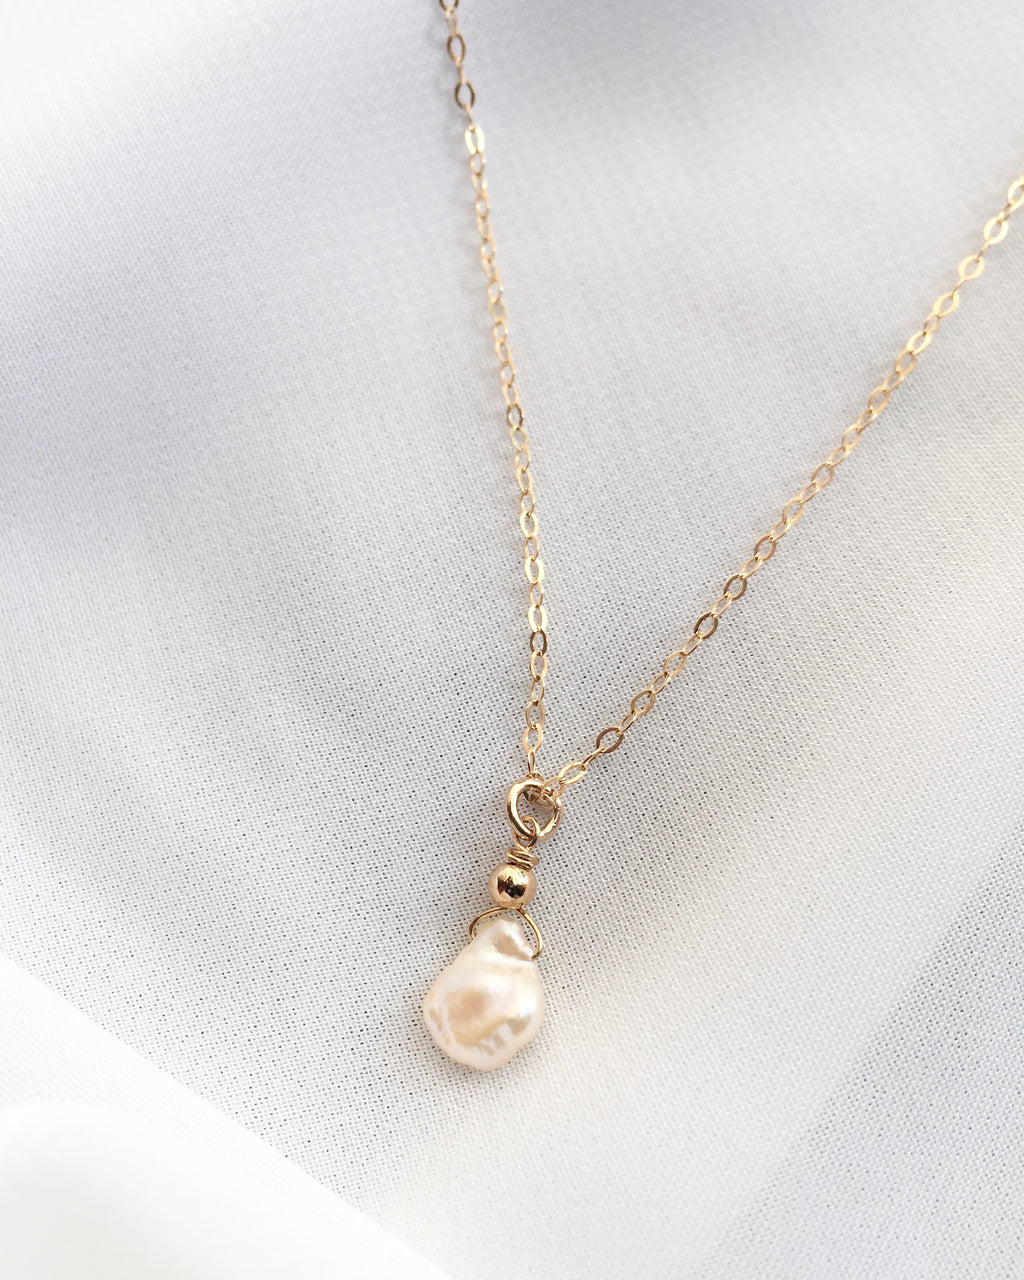 Organic Pearl Necklace in Gold Filled or Sterling Silver | IB Jewelry